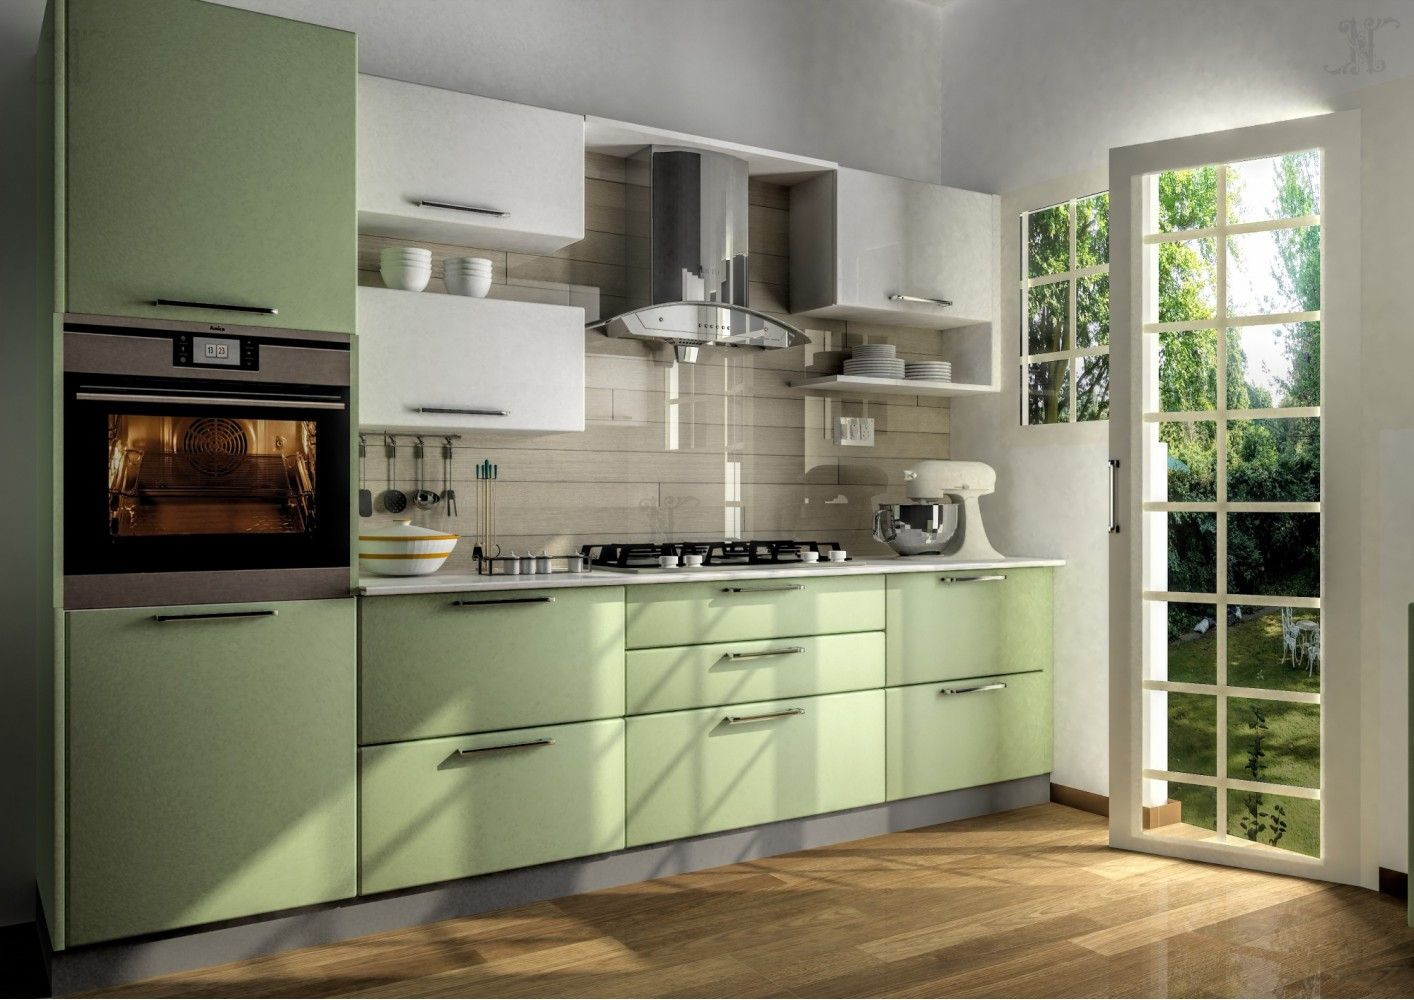 Kitchen Color Design Pictures Indian Parallel Kitchen Interior Design Google Search Kitchen